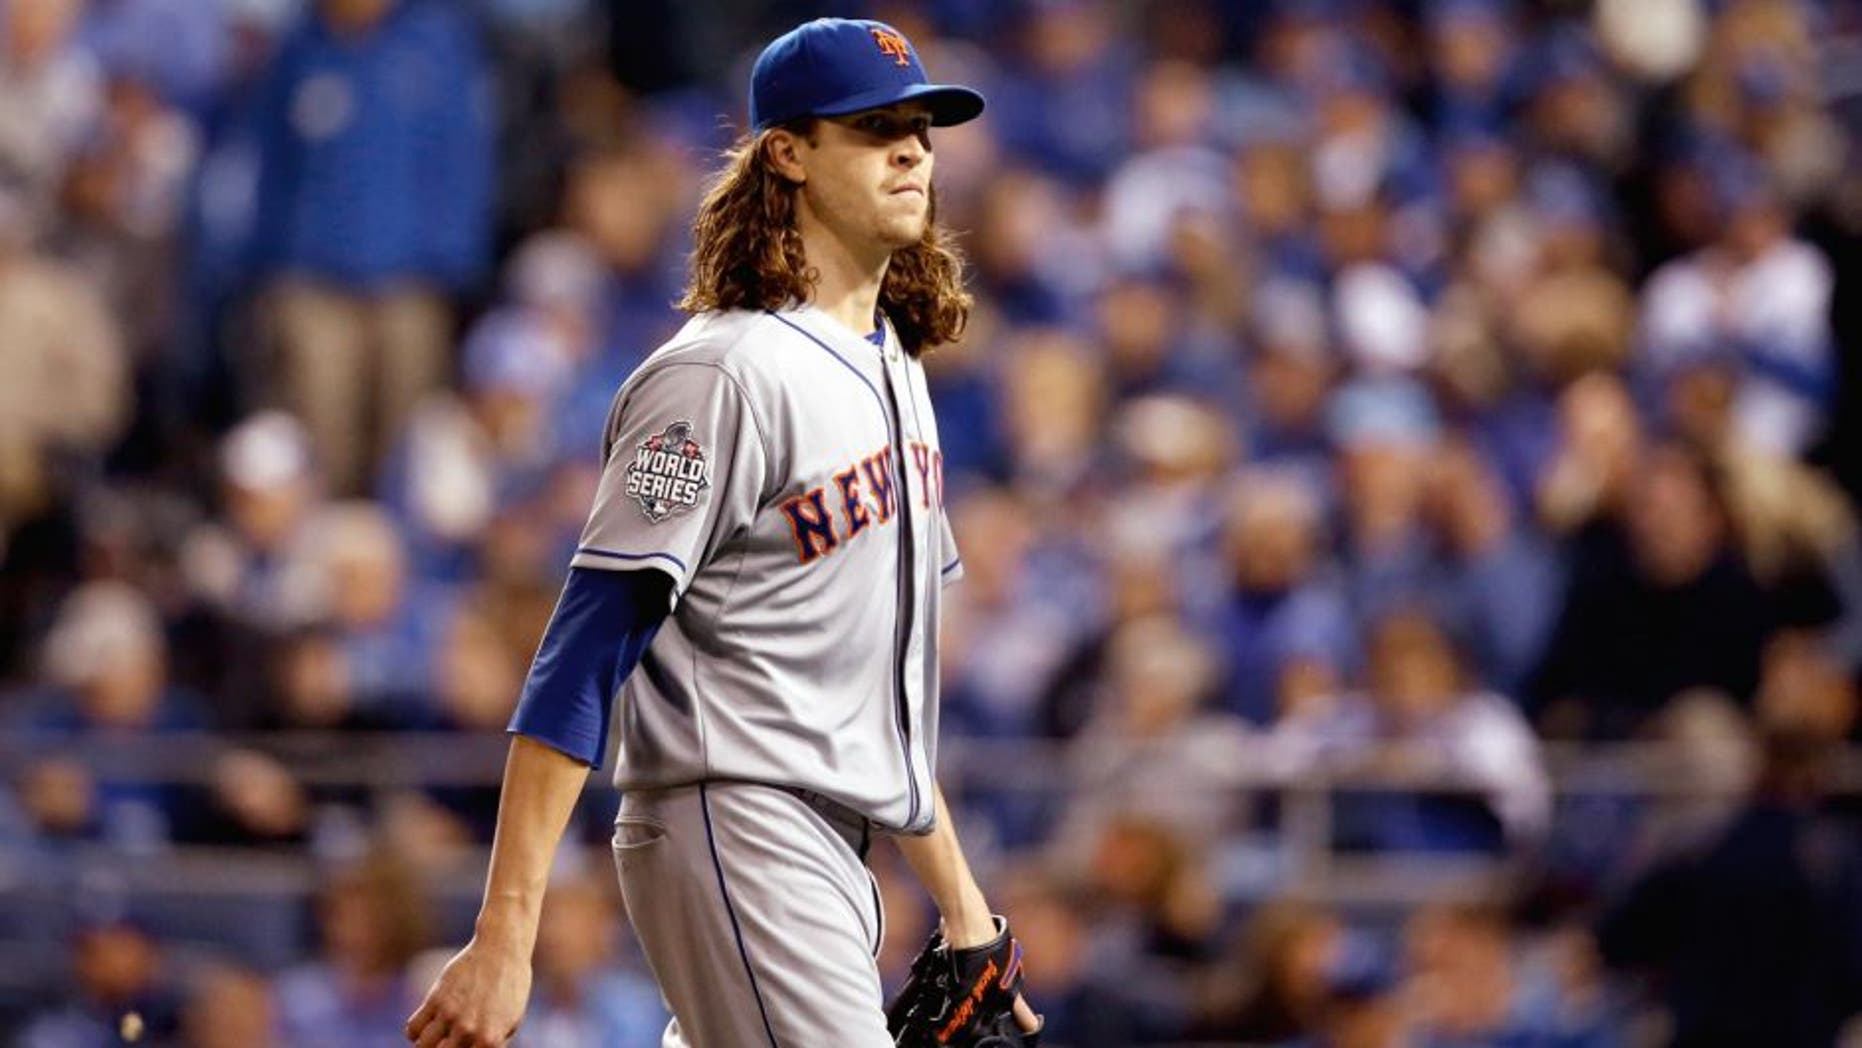 KANSAS CITY, MO - OCTOBER 28: Jacob deGrom #48 of the New York Mets reacts after retiring the side in the second inning against the Kansas City Royals in Game Two of the 2015 World Series at Kauffman Stadium on October 28, 2015 in Kansas City, Missouri. (Photo by Christian Petersen/Getty Images)